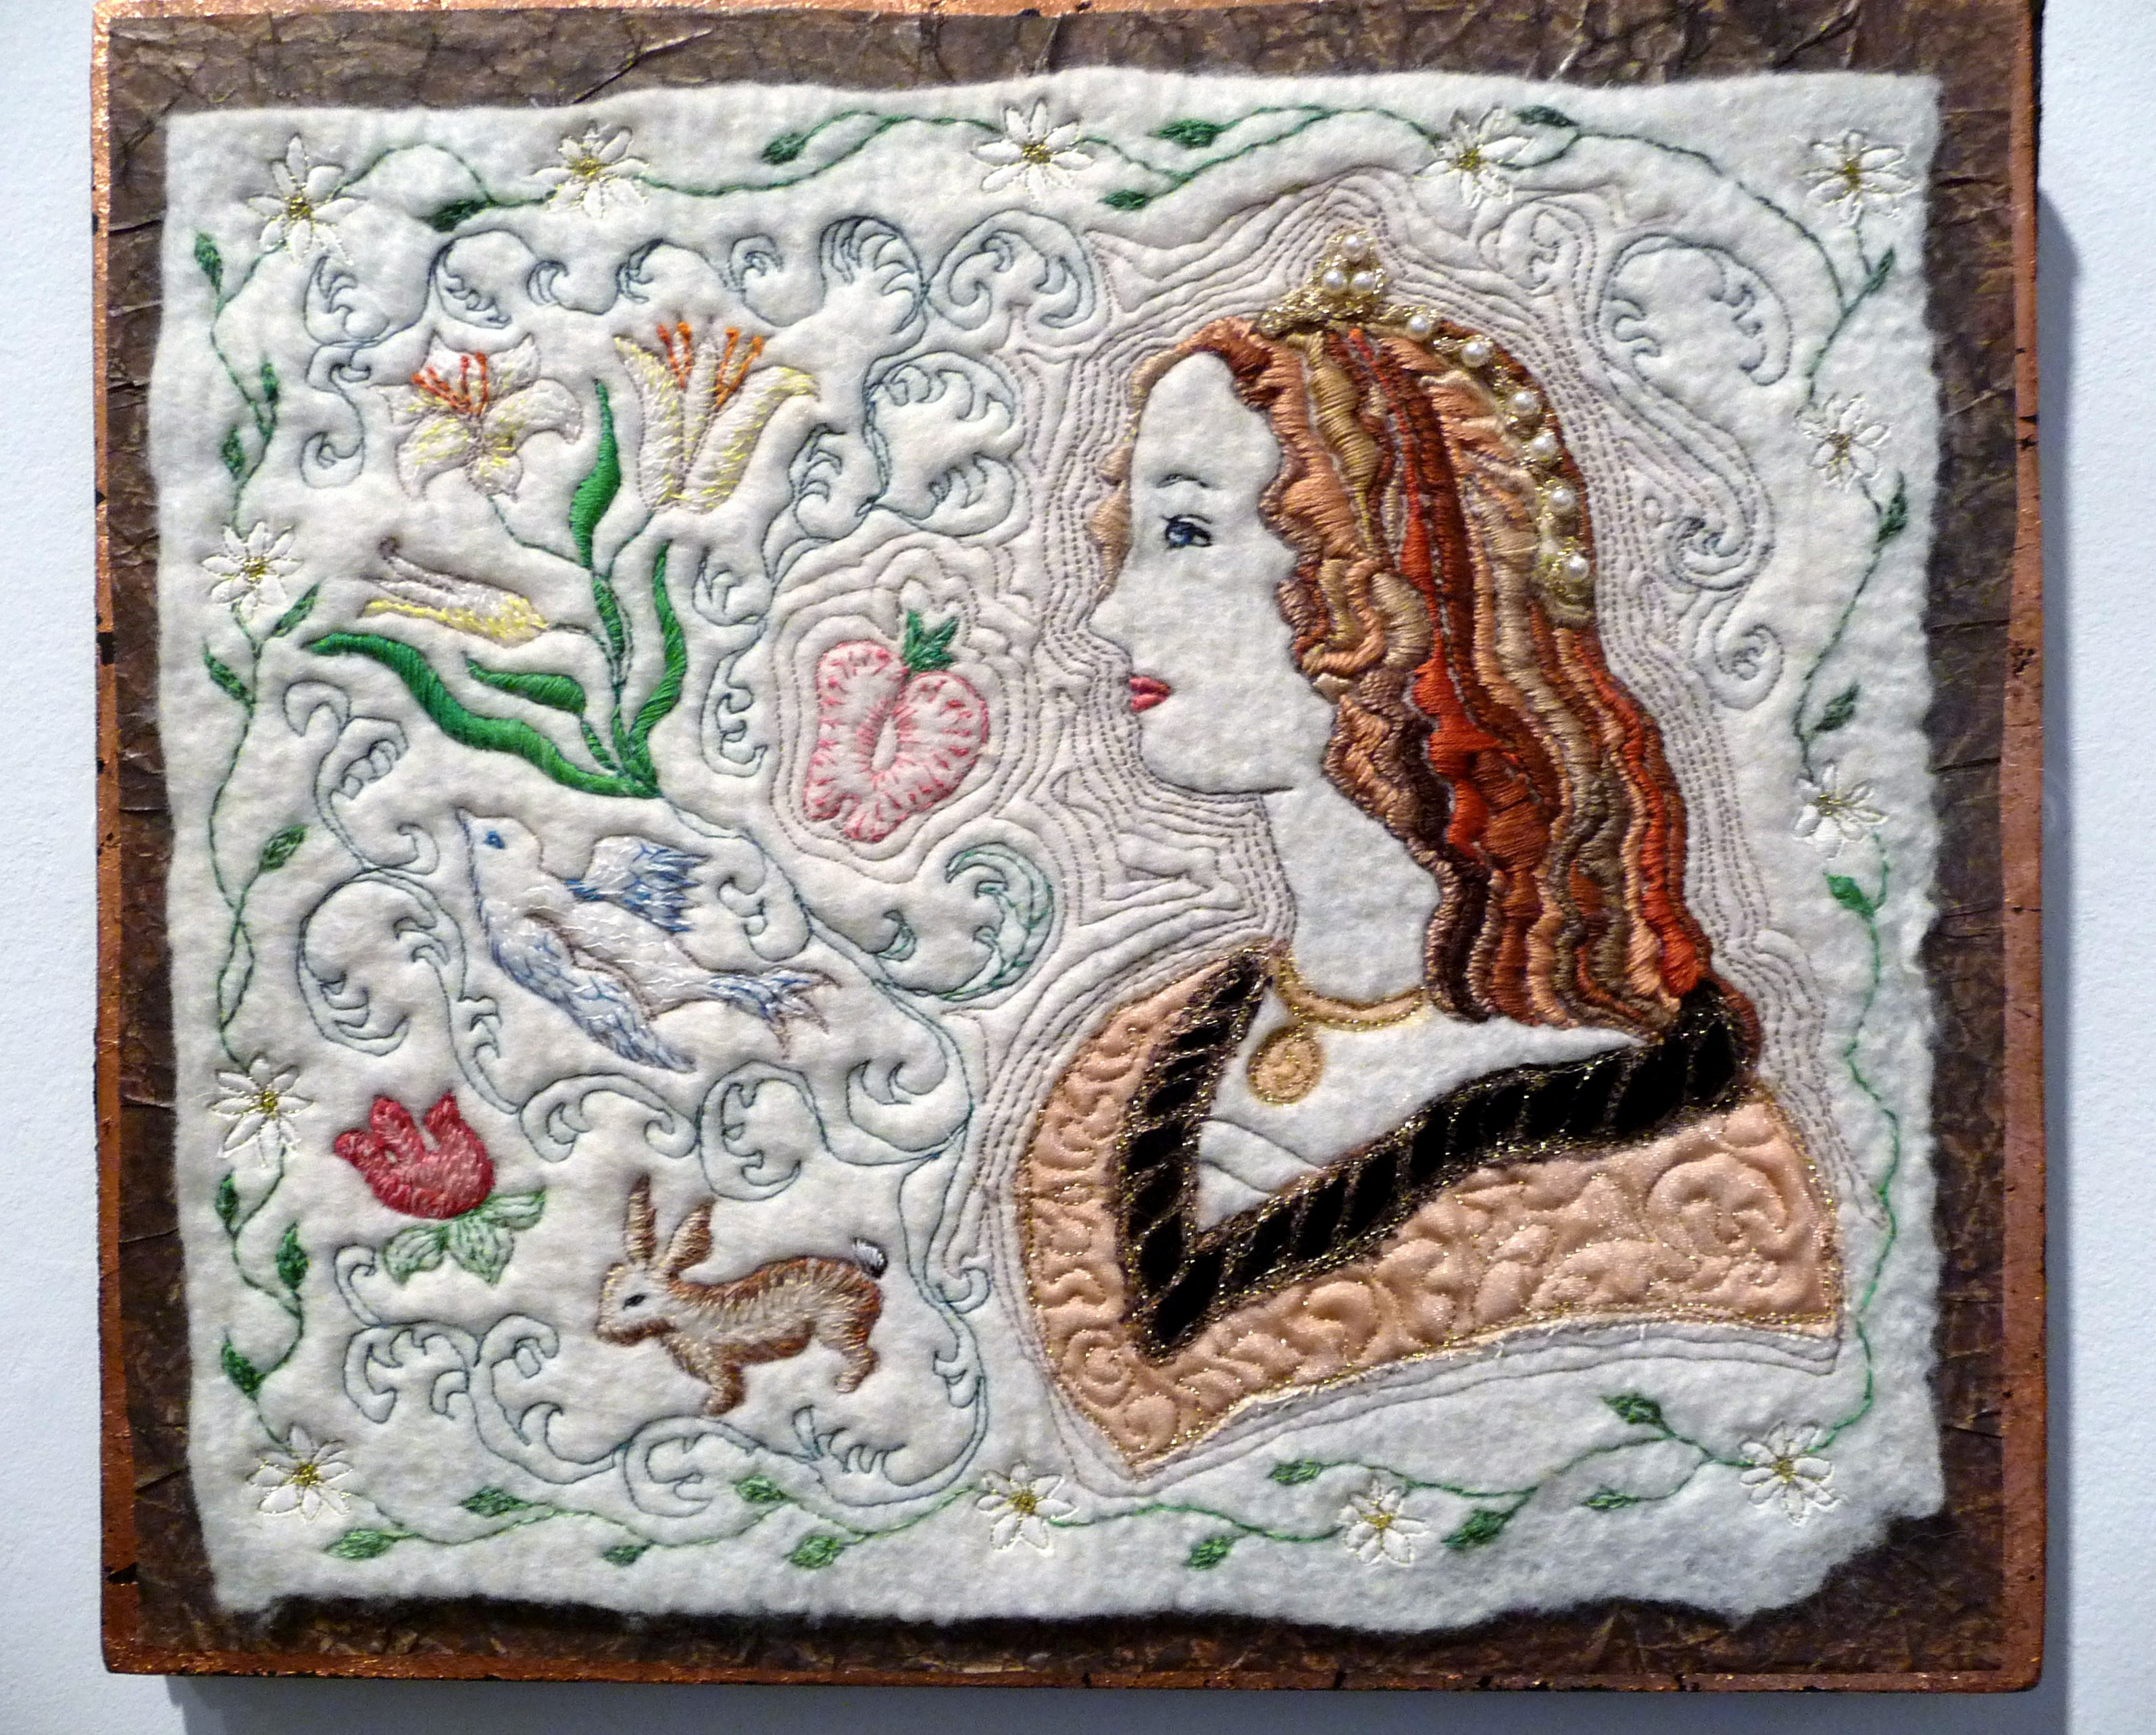 PEARL PRINCESS by Brenda Brown, hand and machine embroidery